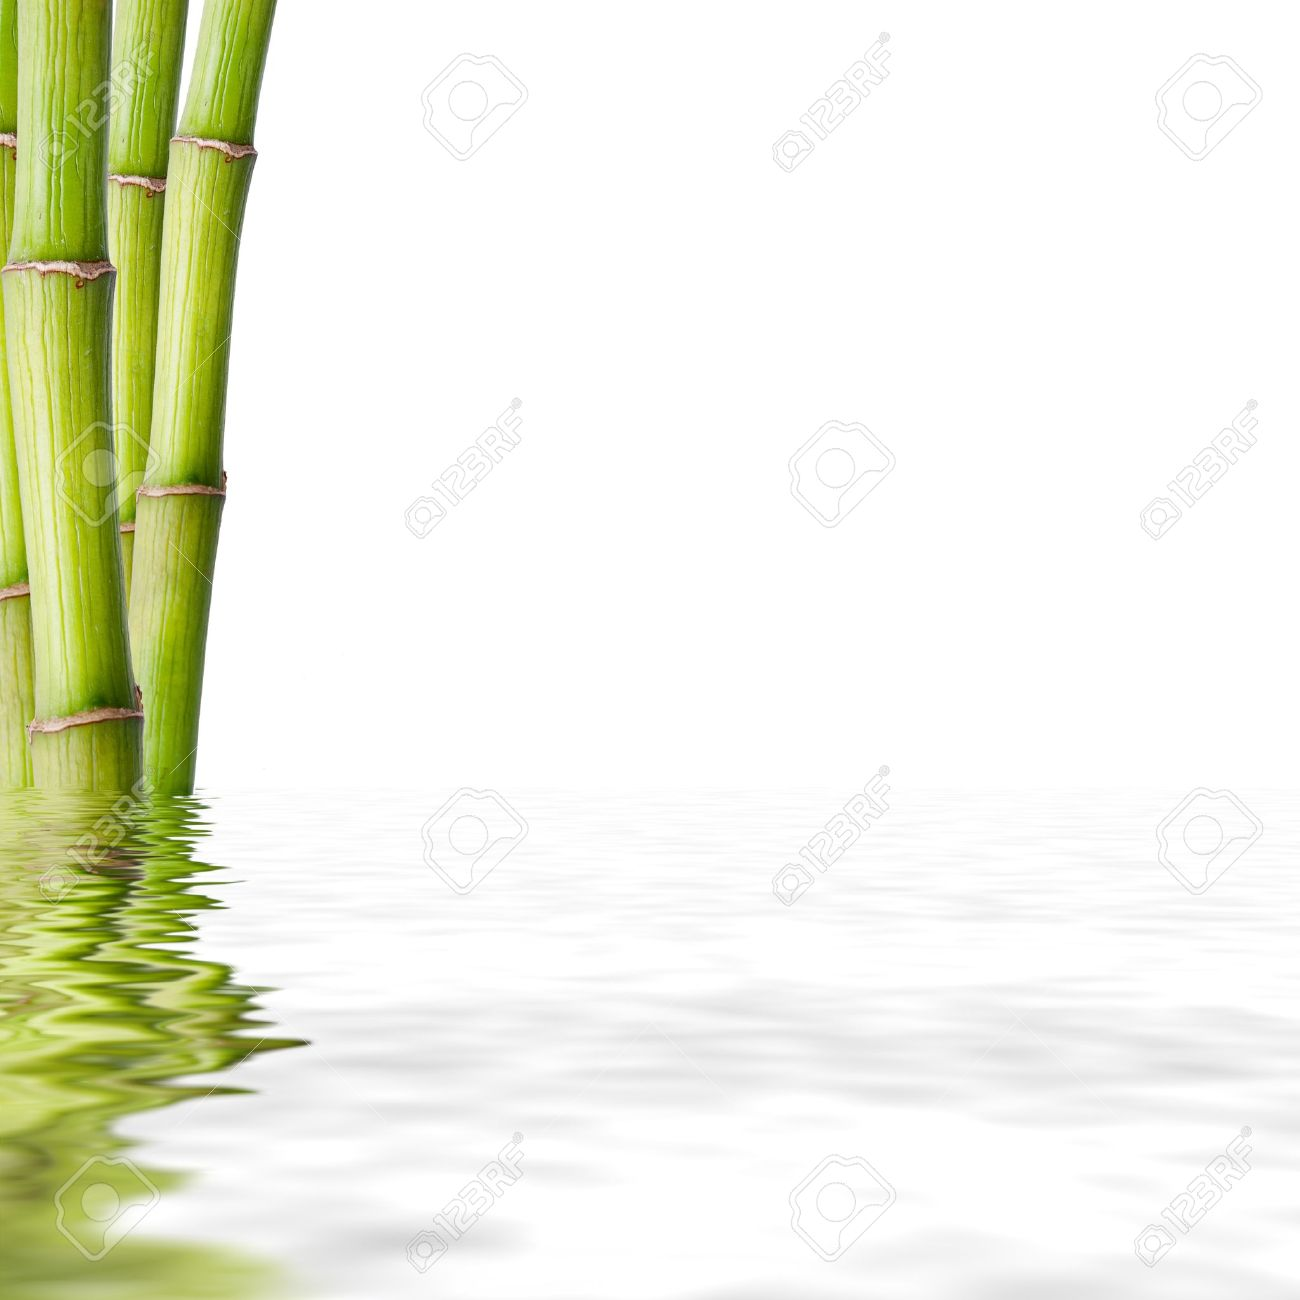 bamboo trunks, fund spa decoration - 15559407